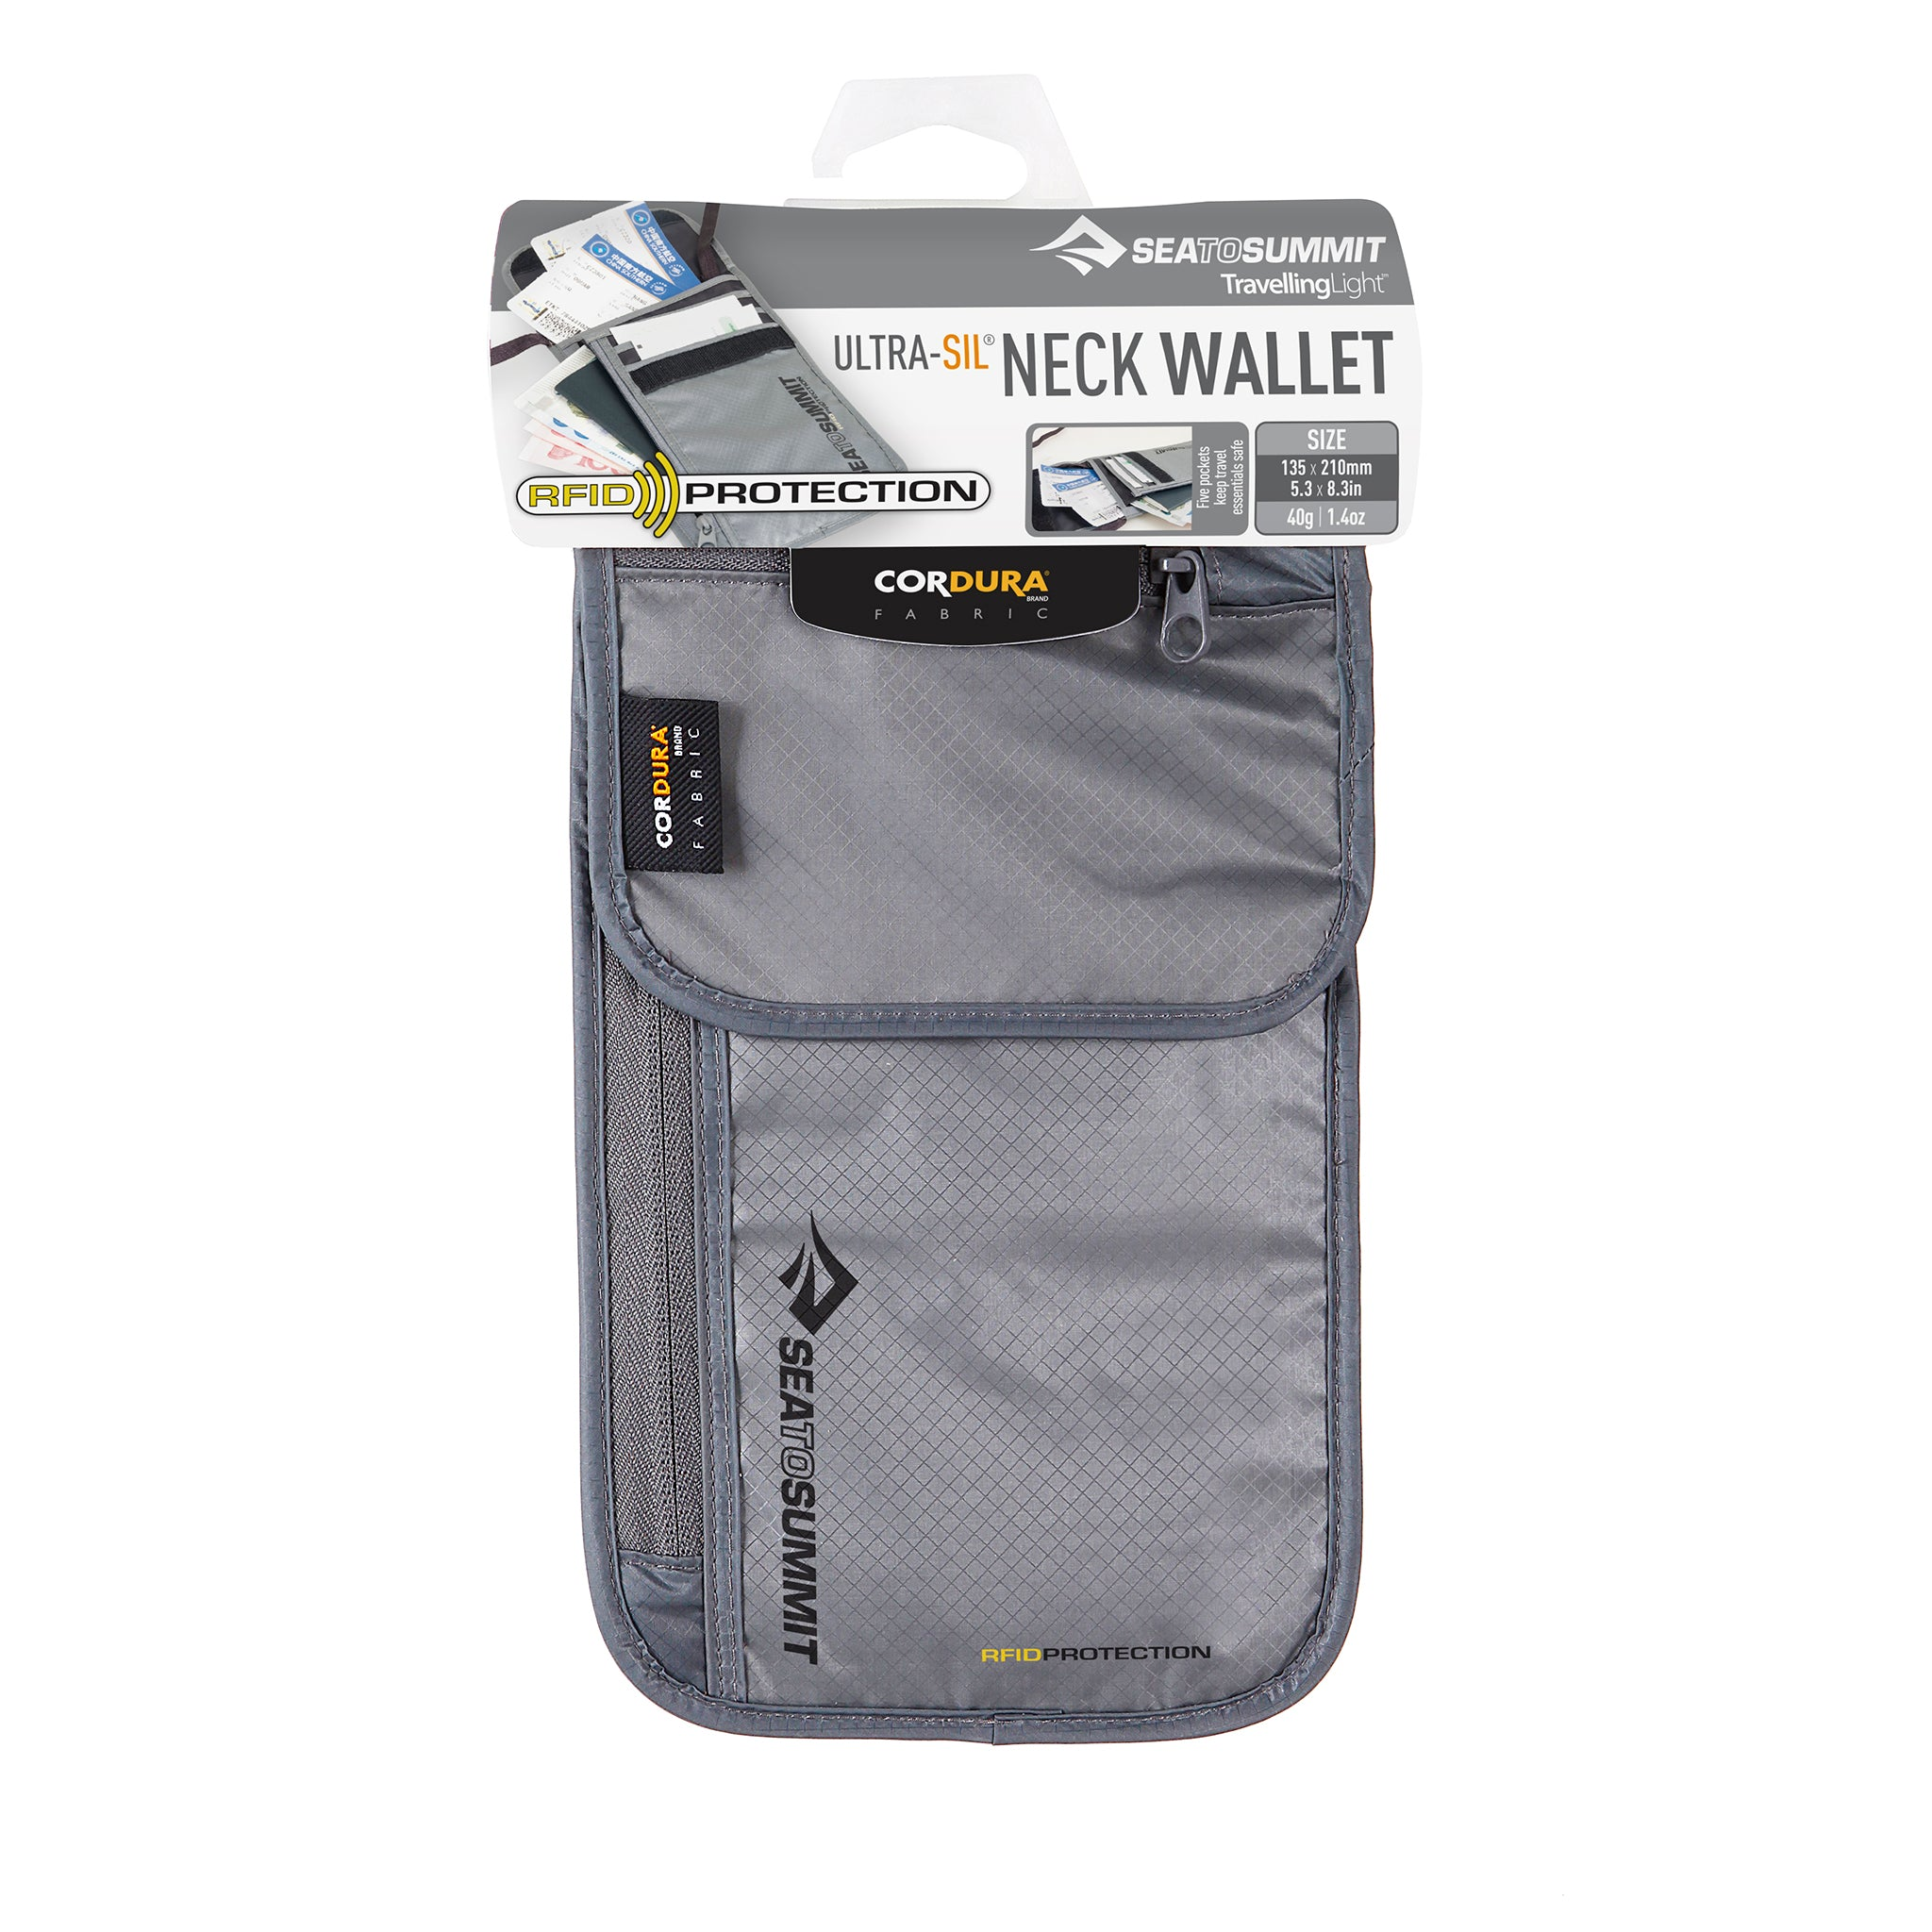 RFID Travel Neck Wallet _ protection